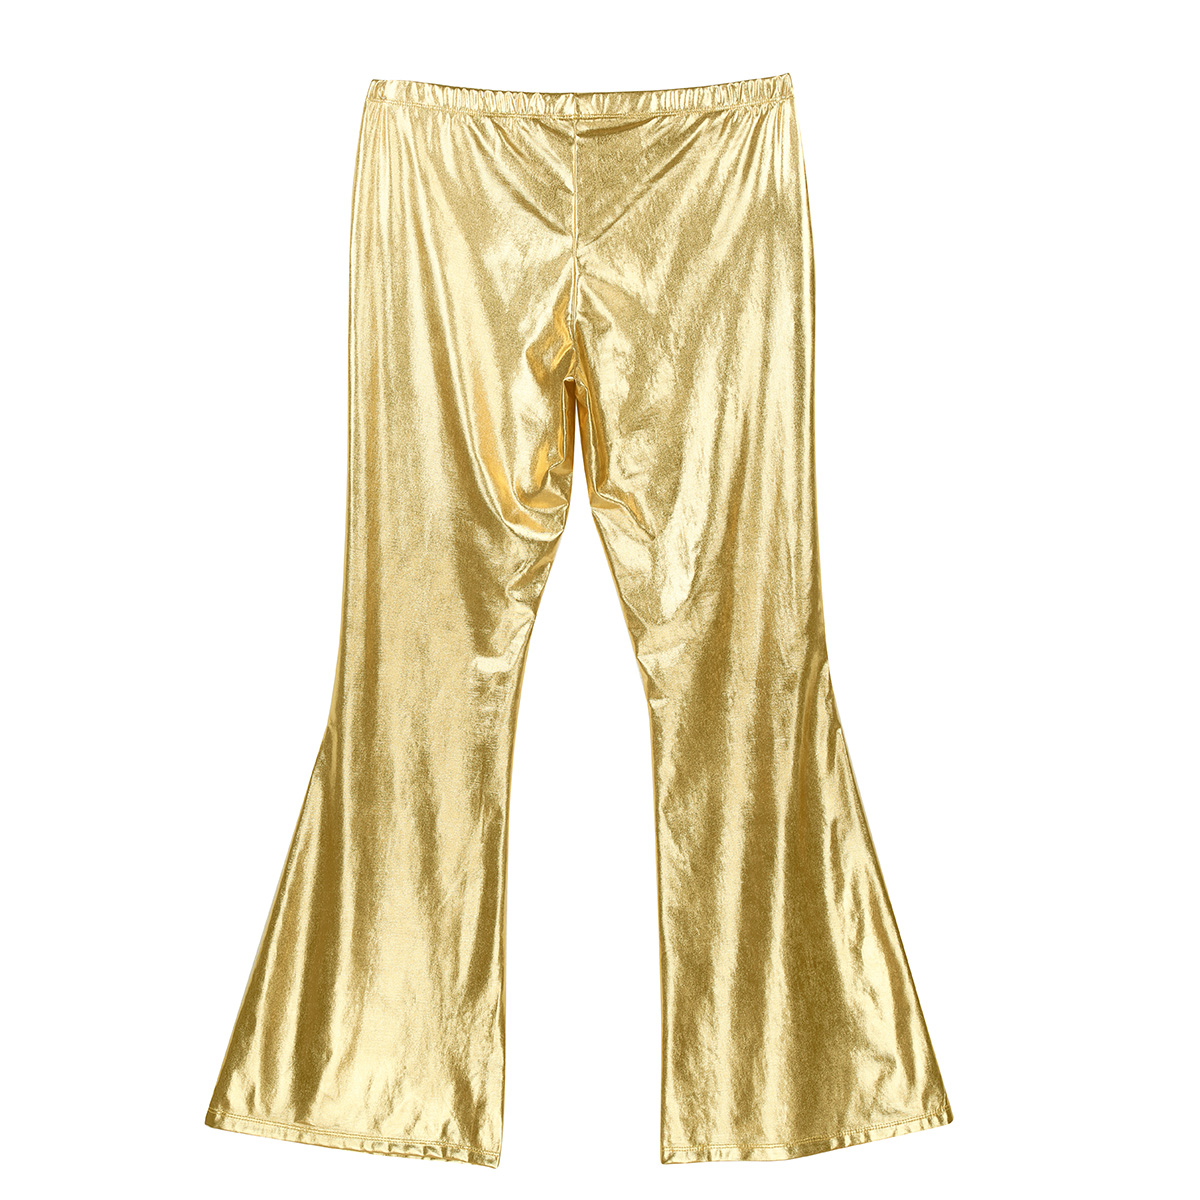 ChicTry Adults Mens Shiny Metallic Disco Pants with Bell Bottom Flared Long Pants Dude Costume Trousers for 70's Theme Parties 43